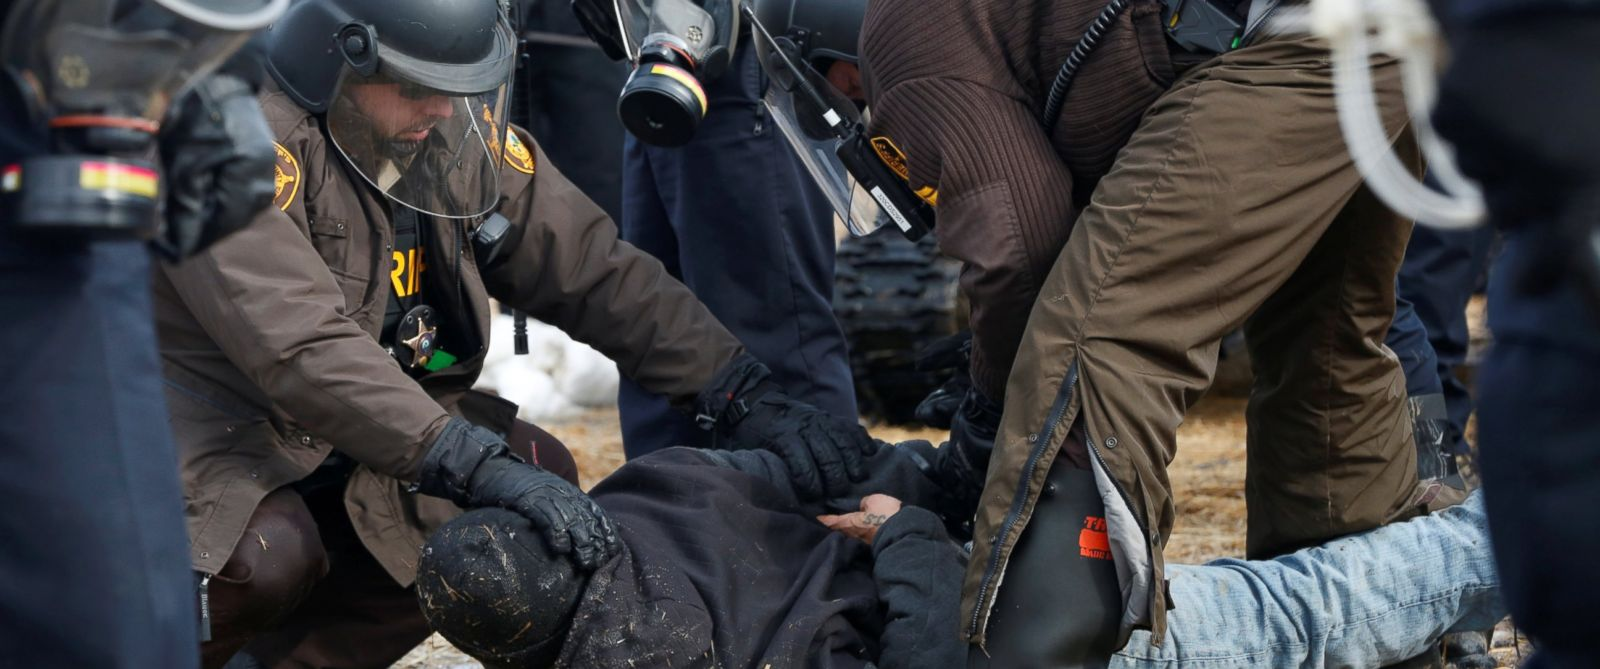 PHOTO: Police detain a protester in the main opposition camp against the Dakota Access oil pipeline near Cannon Ball, North Dakota, Feb. 23, 2017.